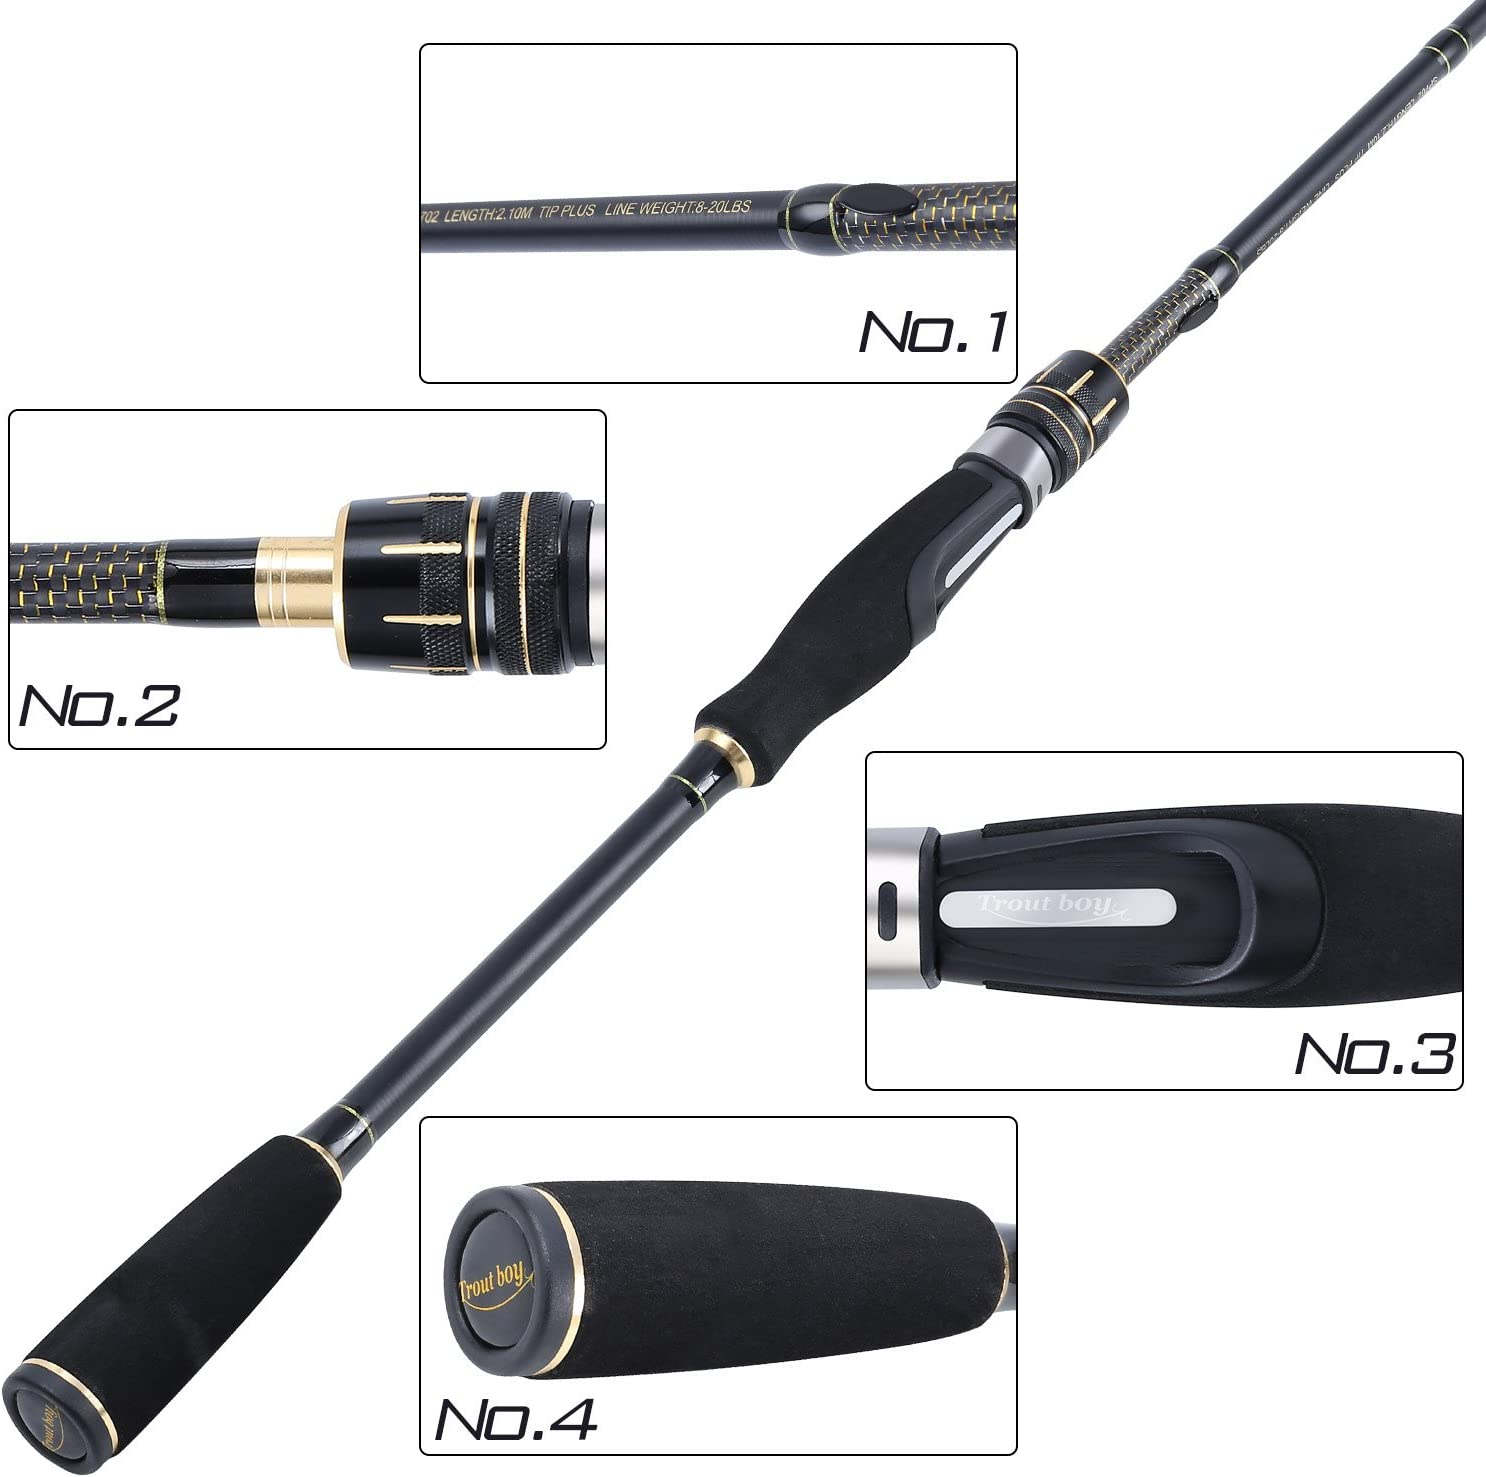 TROUTBOY Fishing Rod, 36 Ton Carbon Fiber, Fuji O ring Line Guides, EVA Fore Grip Ultra Light Fishing Pole for Casting Spinning Fishing